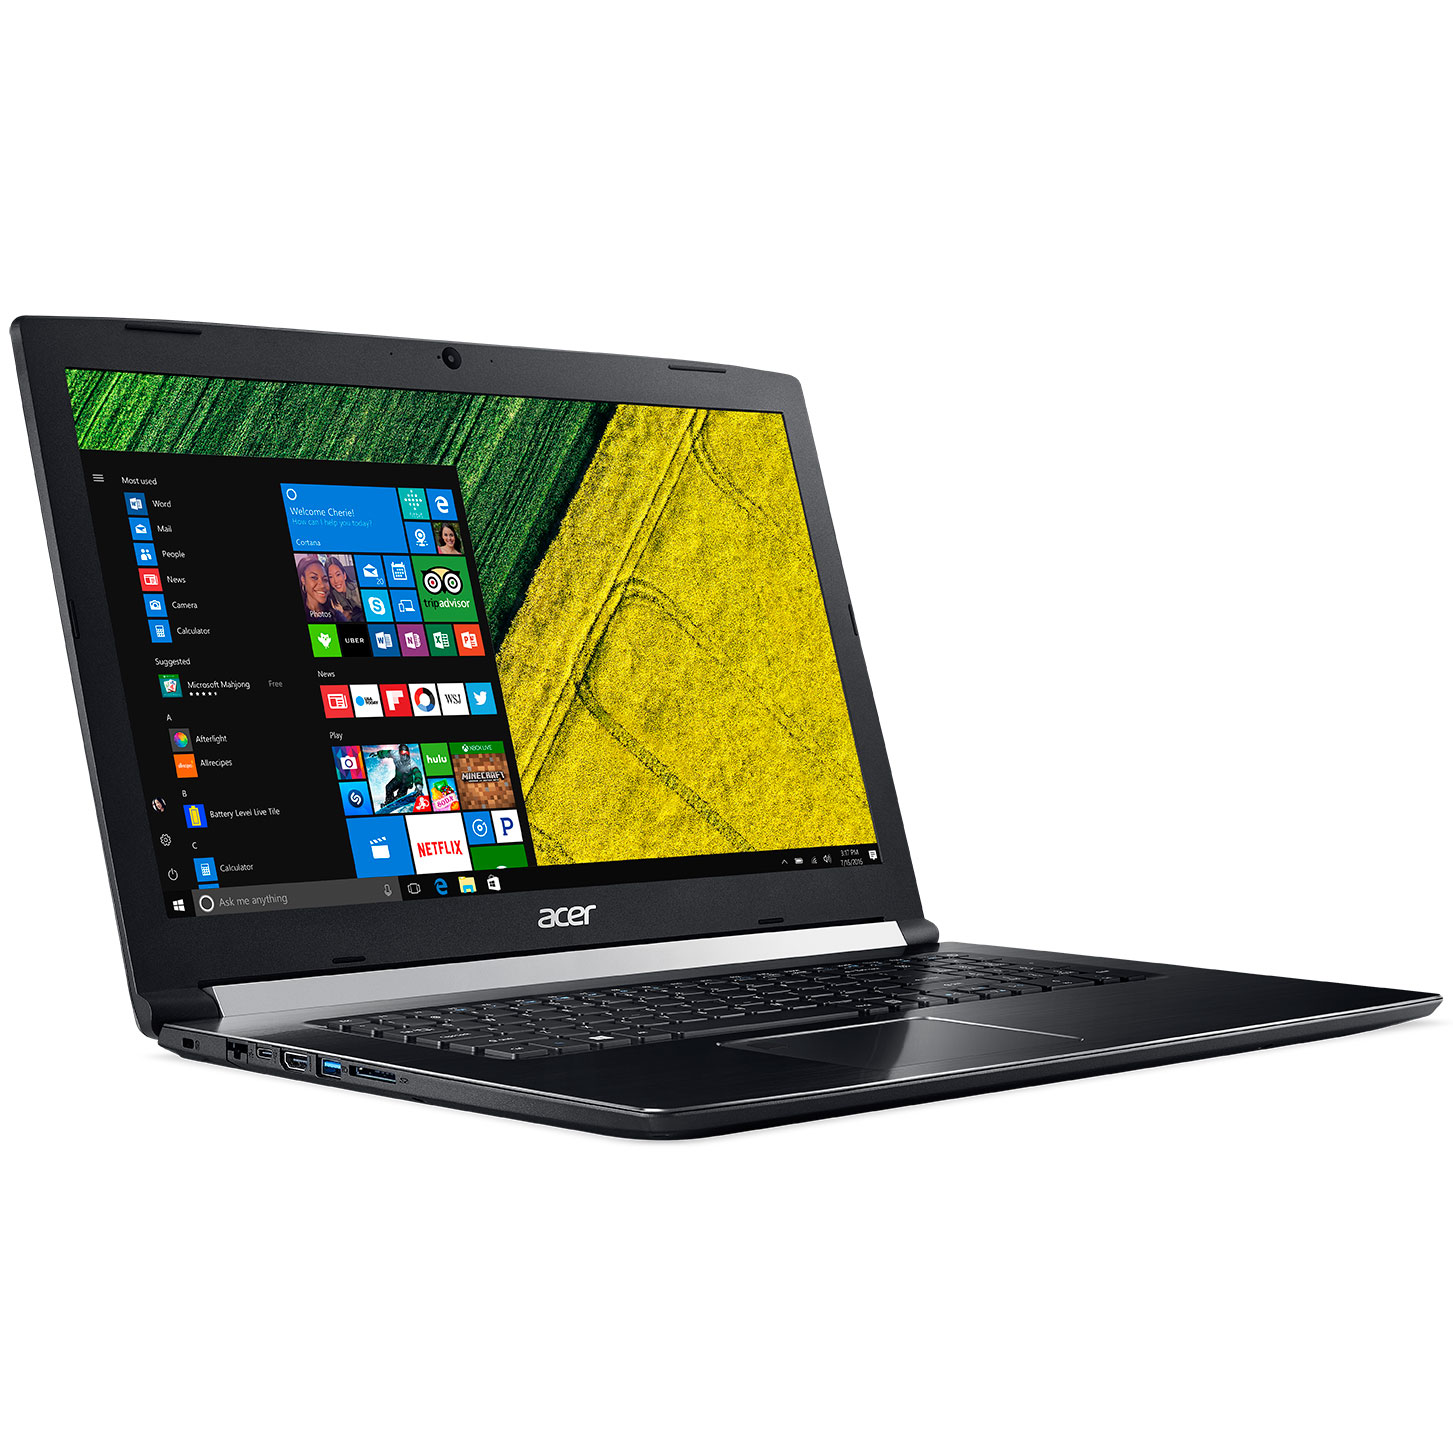 "PC portable Acer Aspire 7 A717-71G-58P6 Noir Intel Core i5-7300HQ 8 Go 1 To 17.3"" LED Full HD NVIDIA GeForce GTX 1050 Ti 4 Go Wi-Fi AC/Bluetooth Webcam Windows 10 Famille 64 bits"